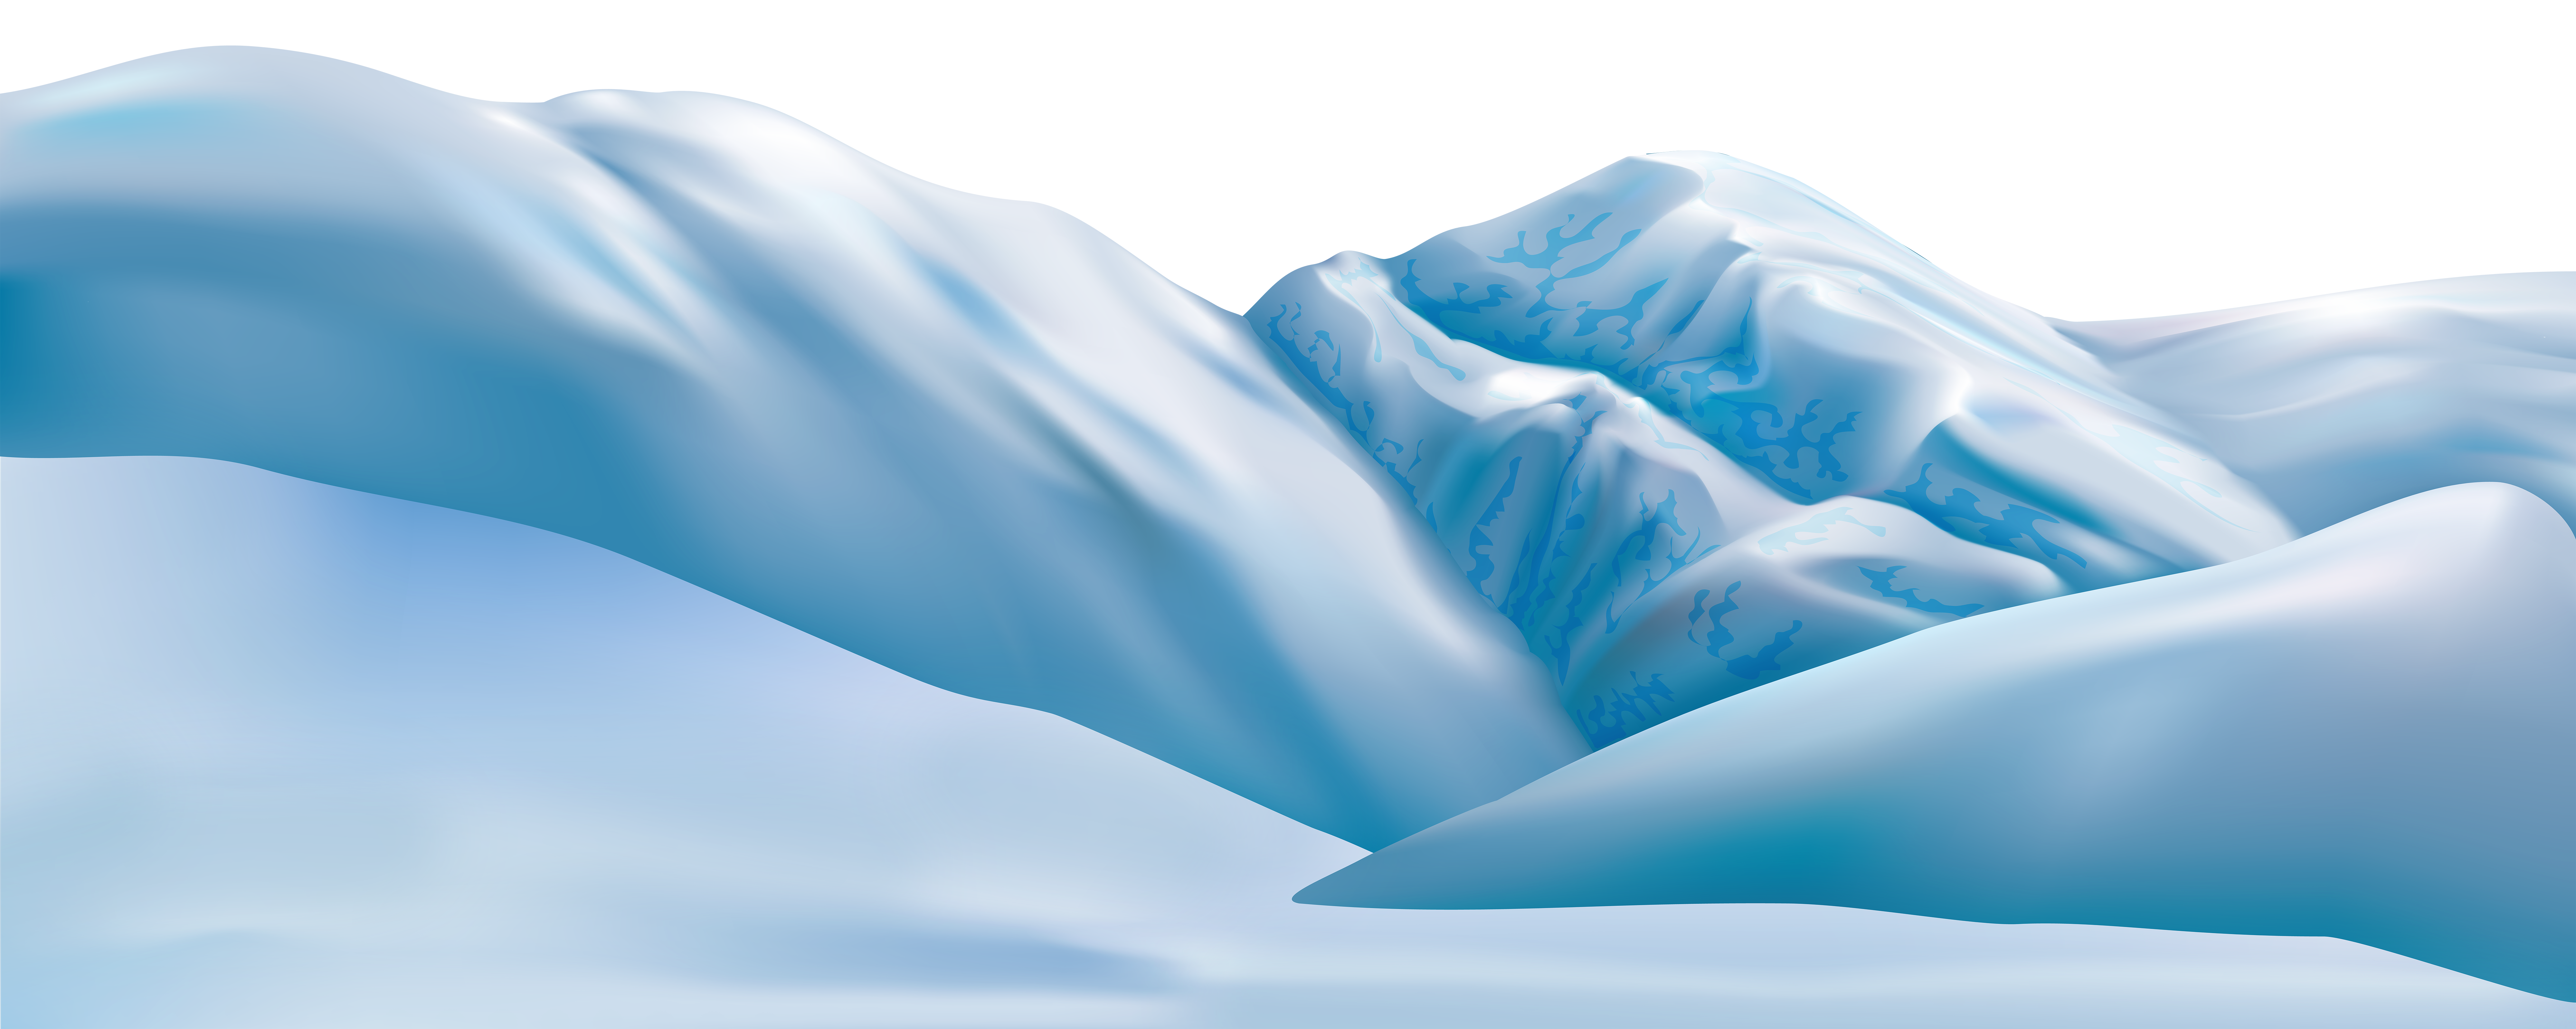 Mountain clipart snowy mountain. Transparent png image gallery